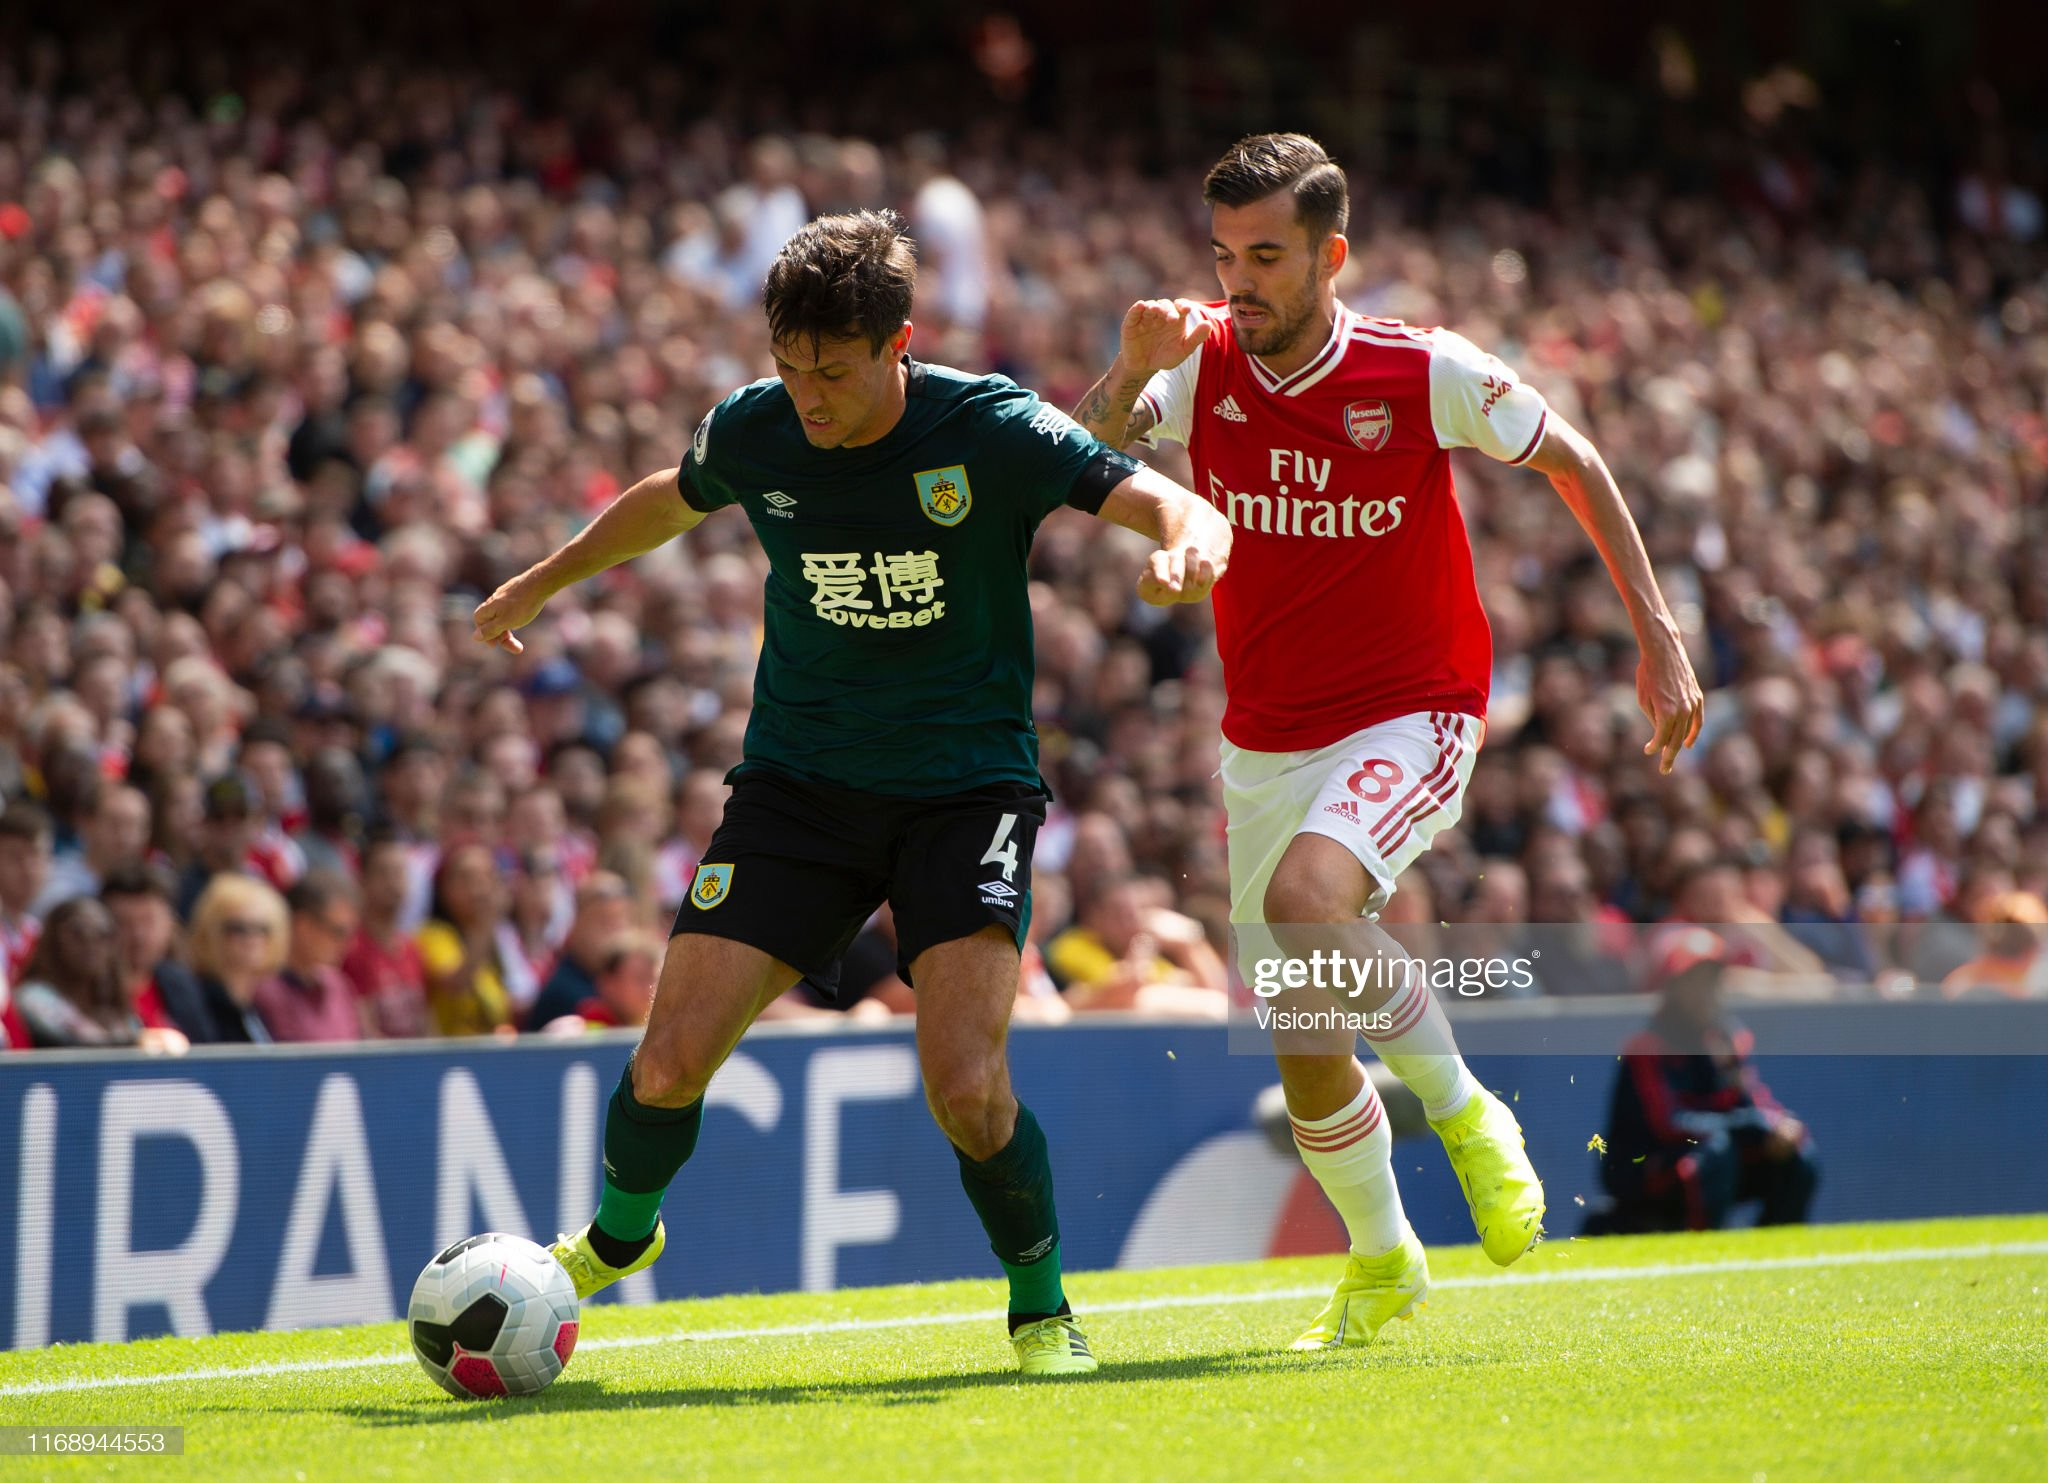 Burnley v Arsenal preview, prediction and odds